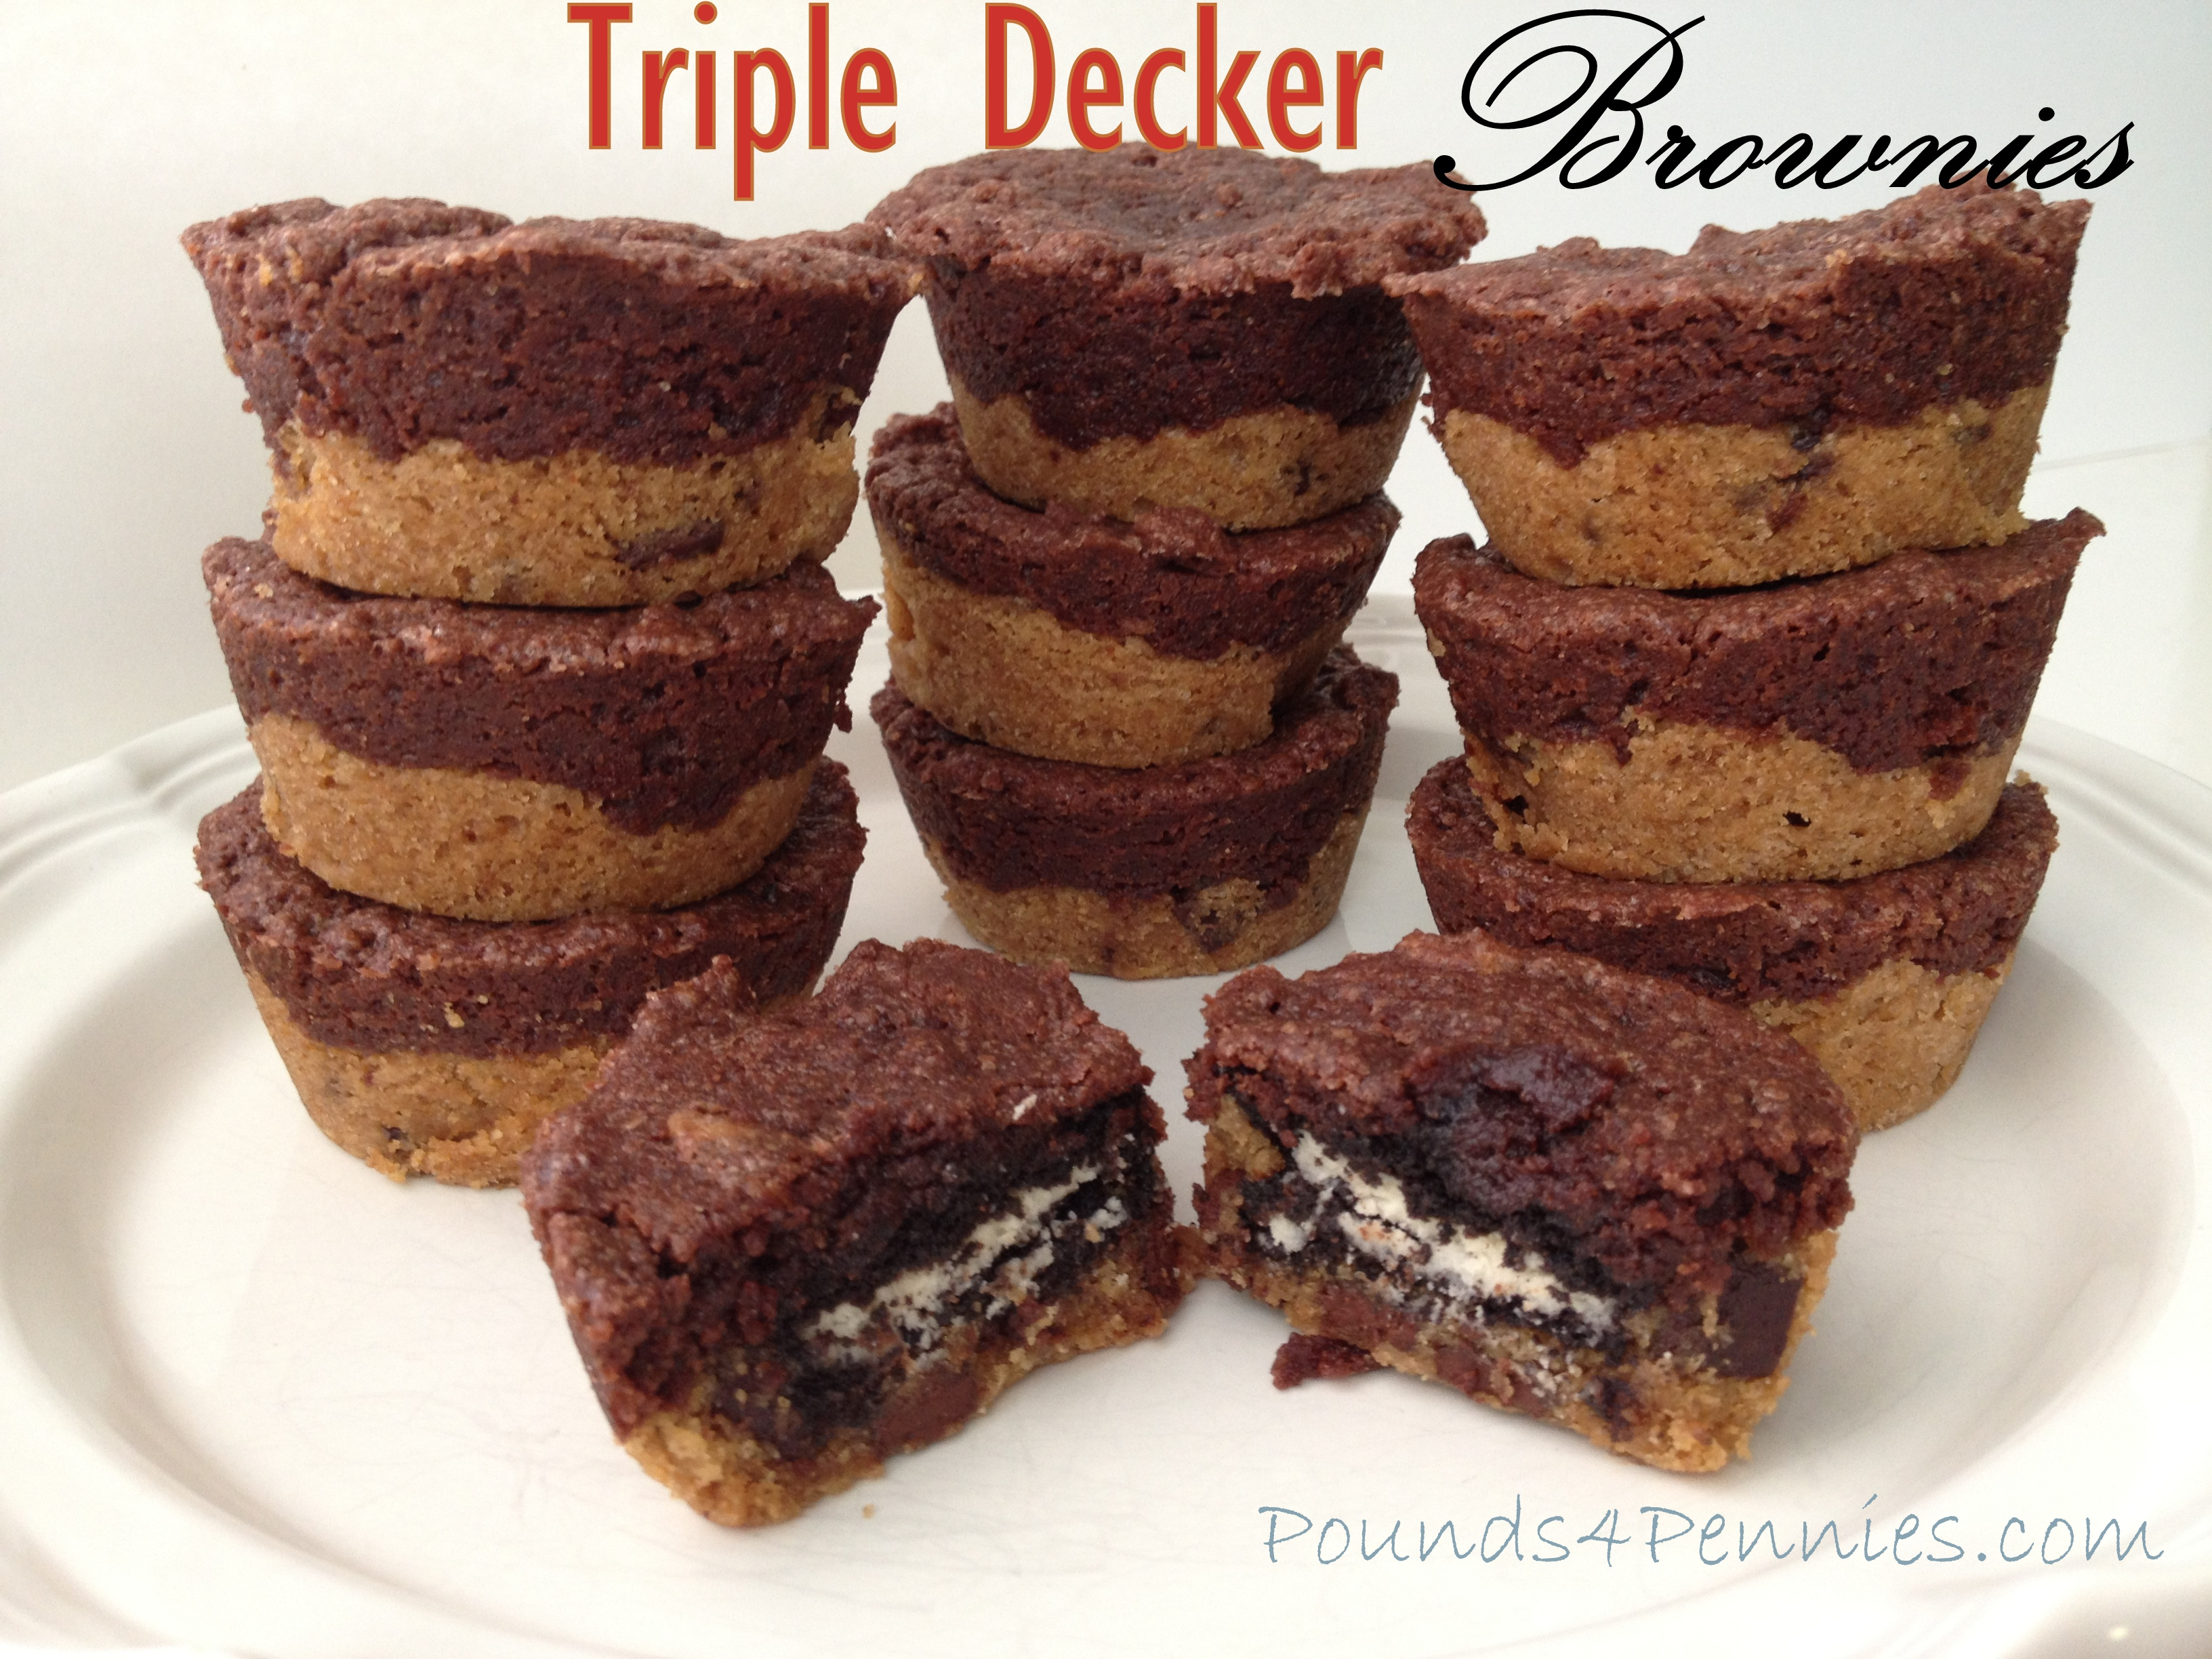 c-Triple-Decker-Chocolate-Brownies